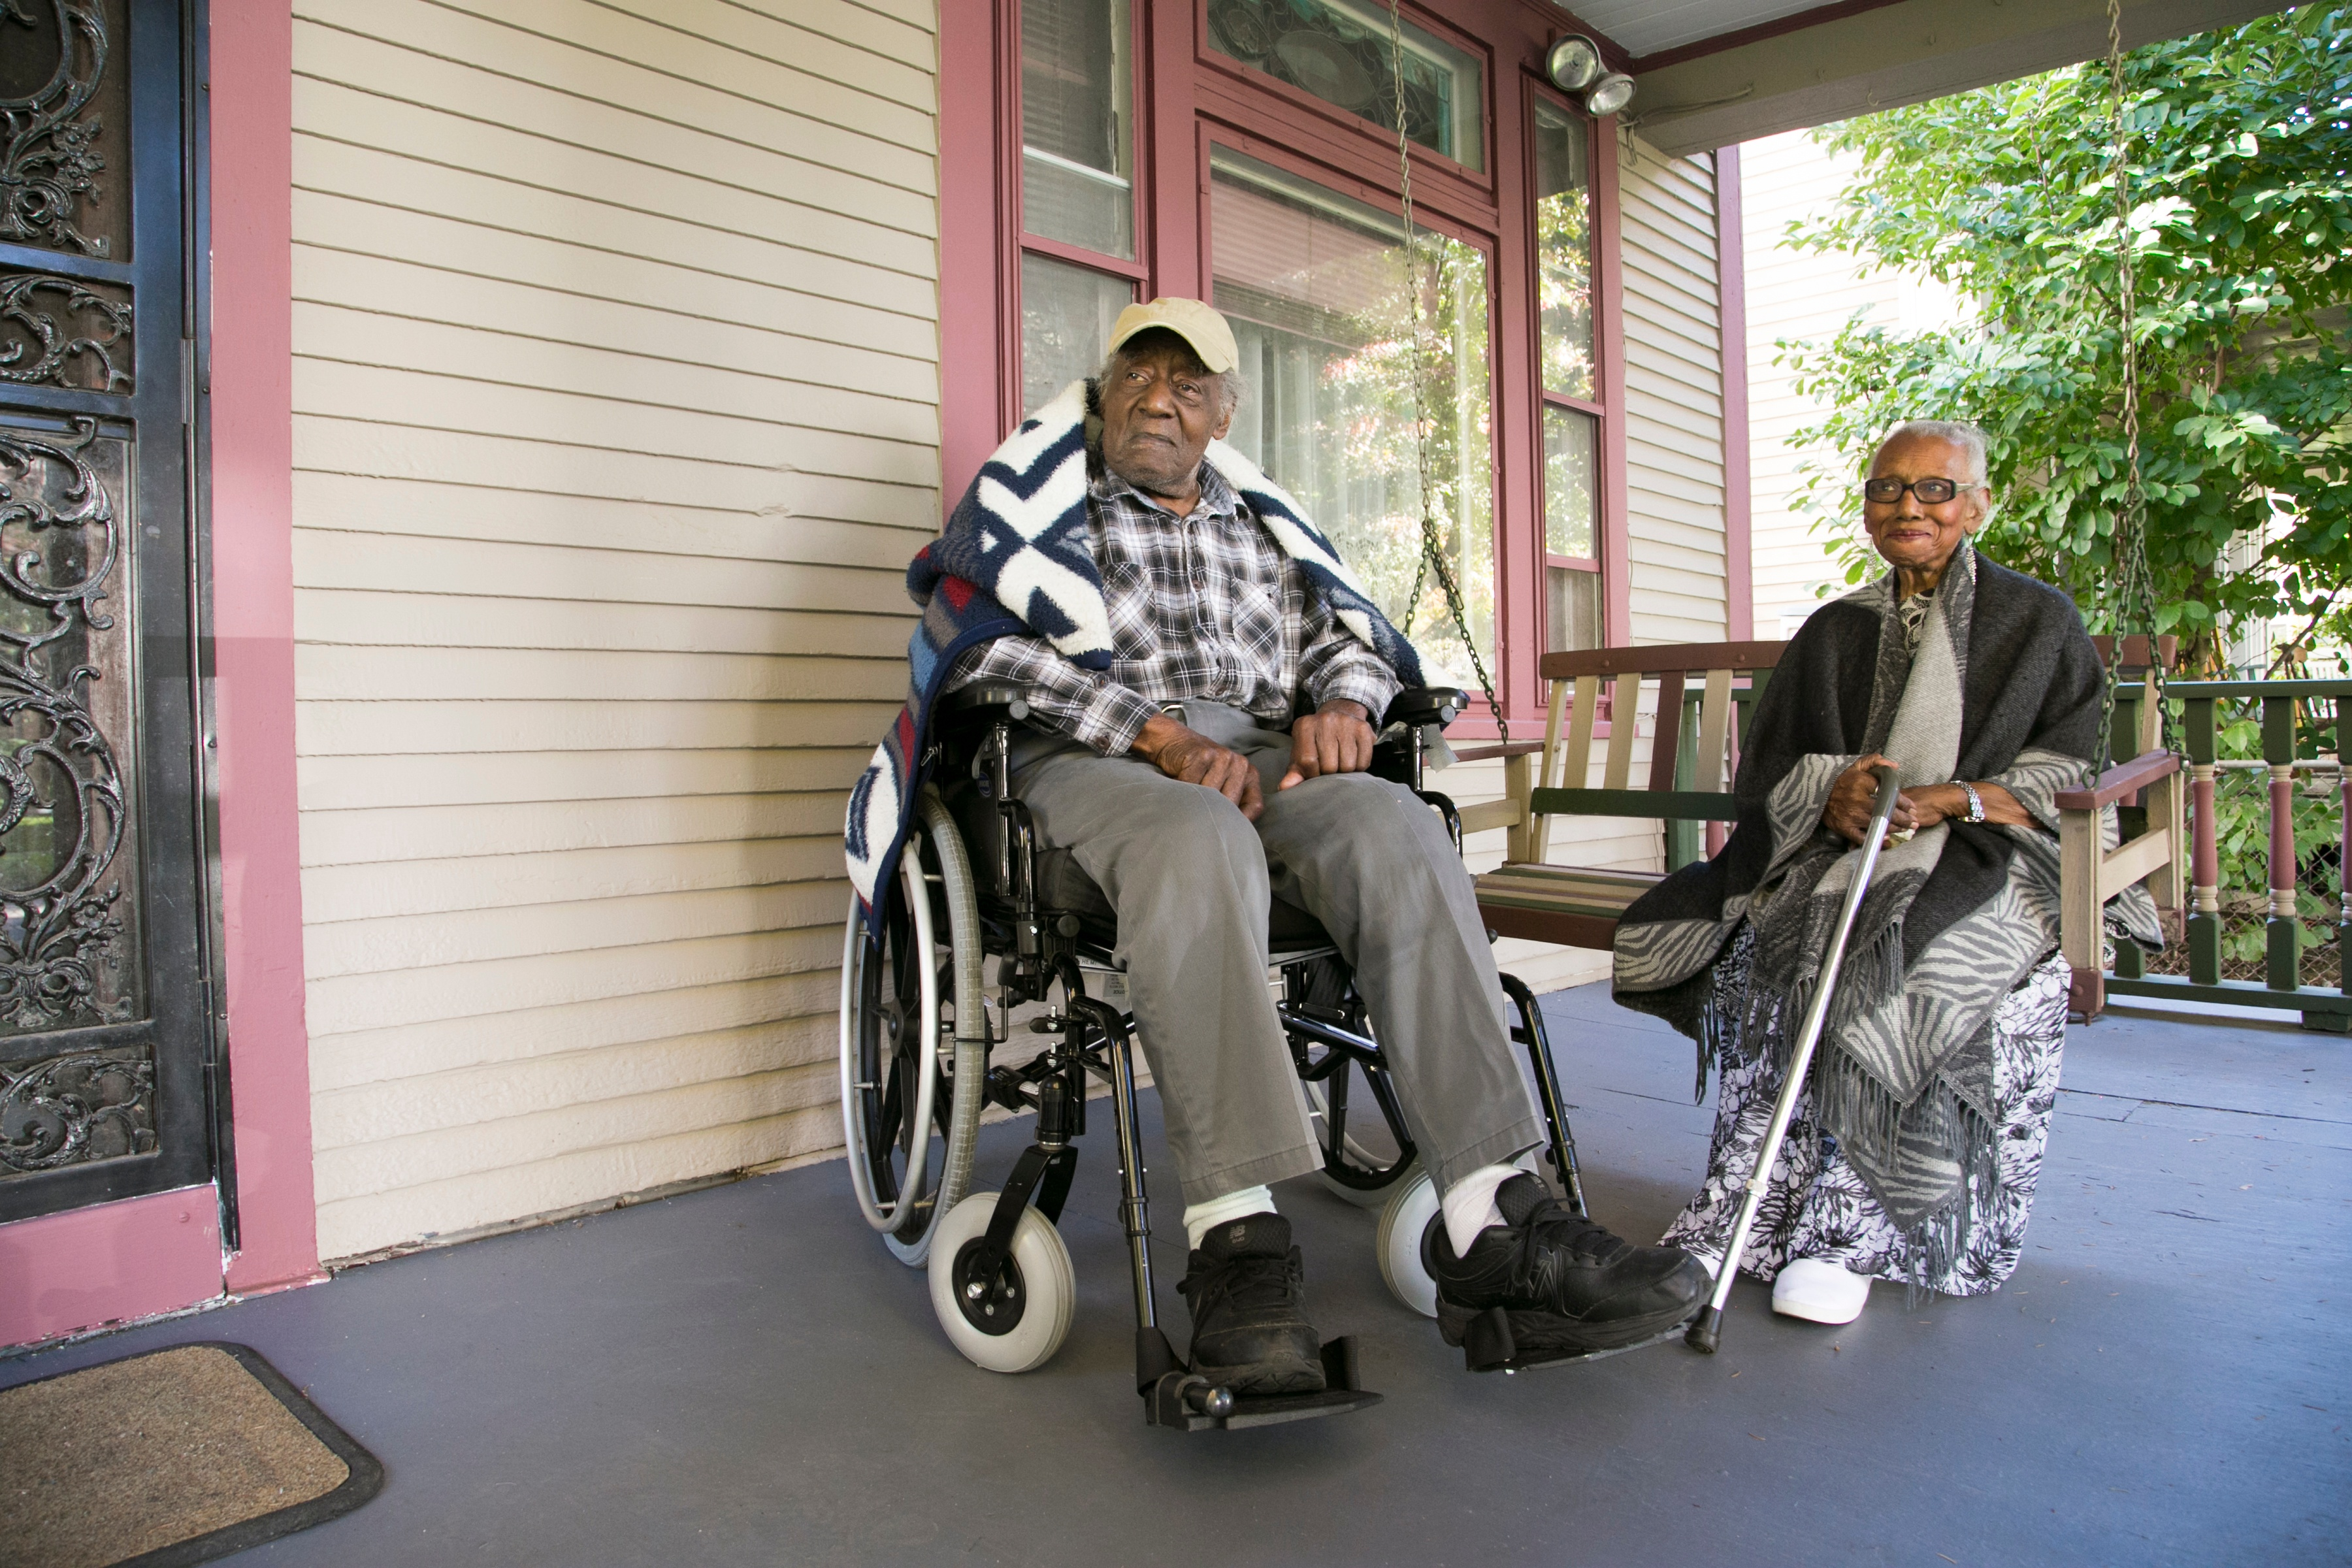 Senior couple on porch swing and in wheel chair